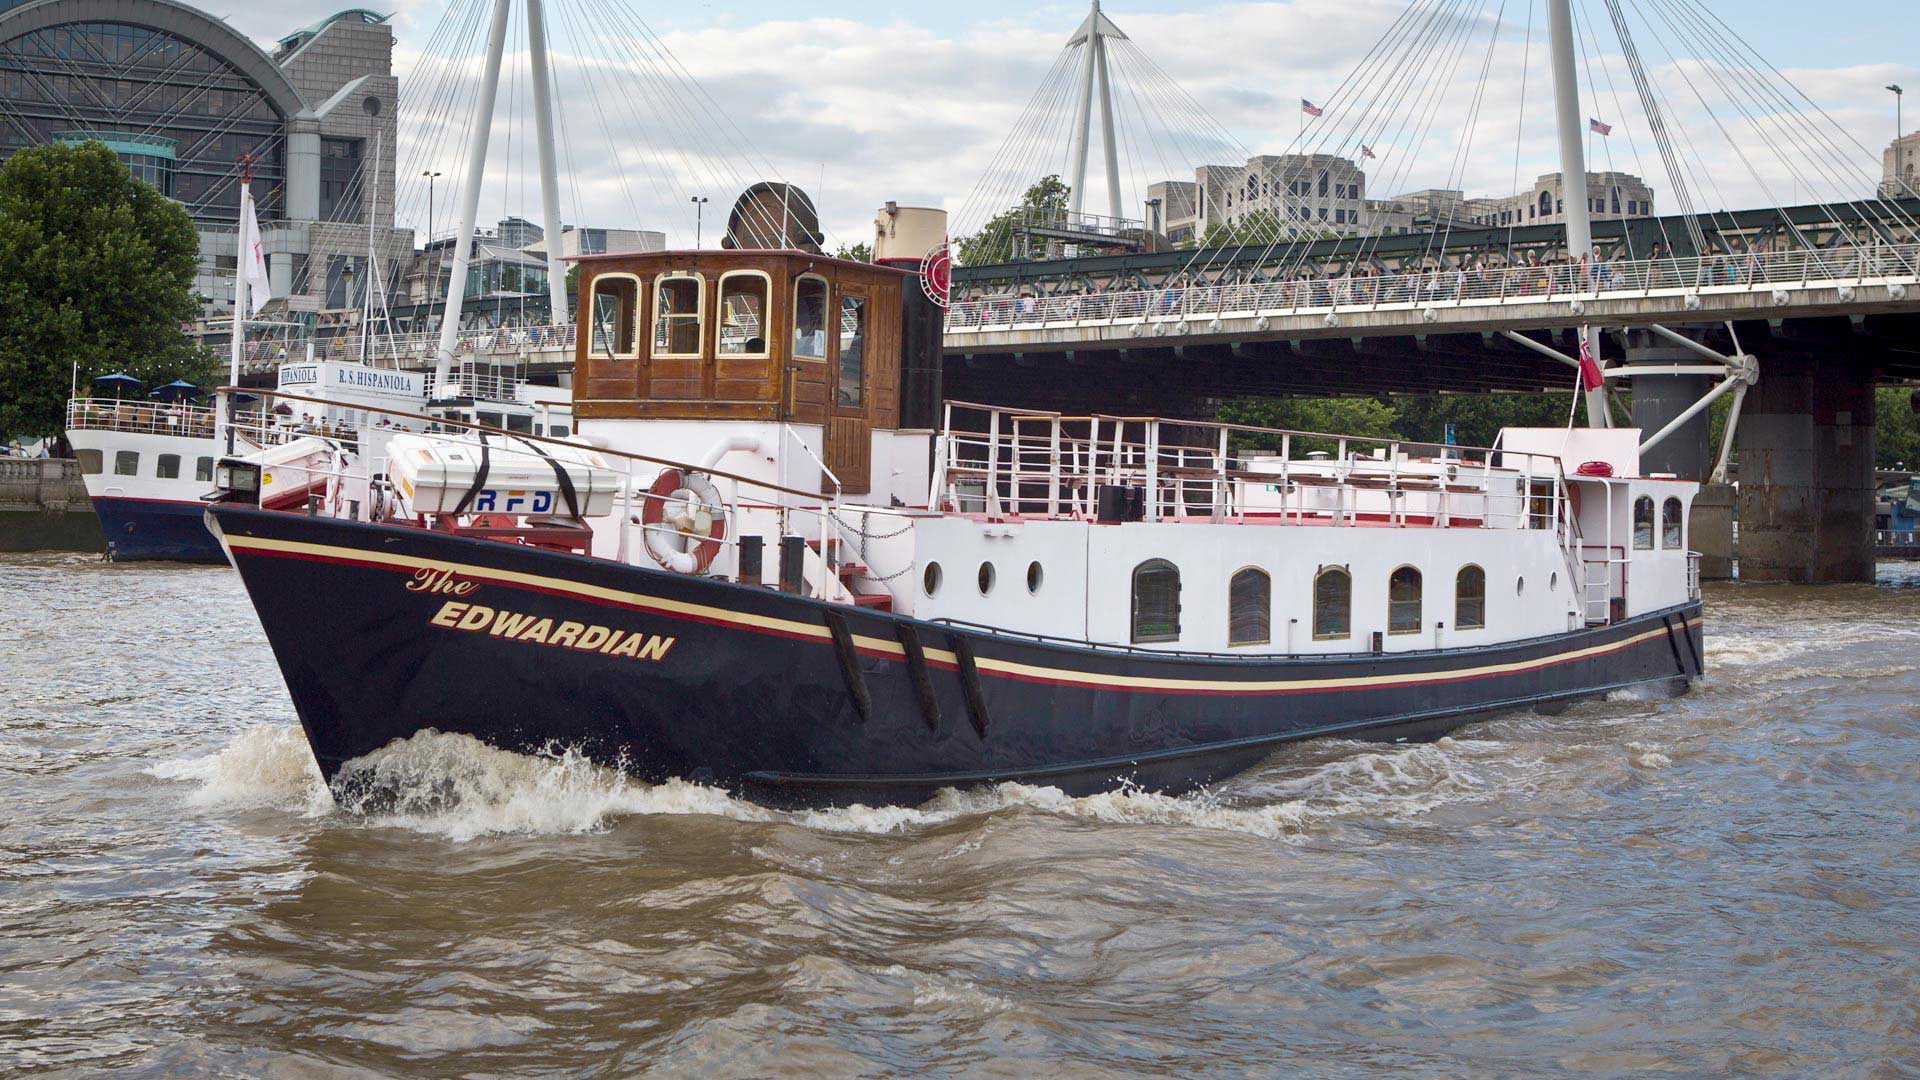 Edwardian Luxury London Party Boat Hire Fleet Thames